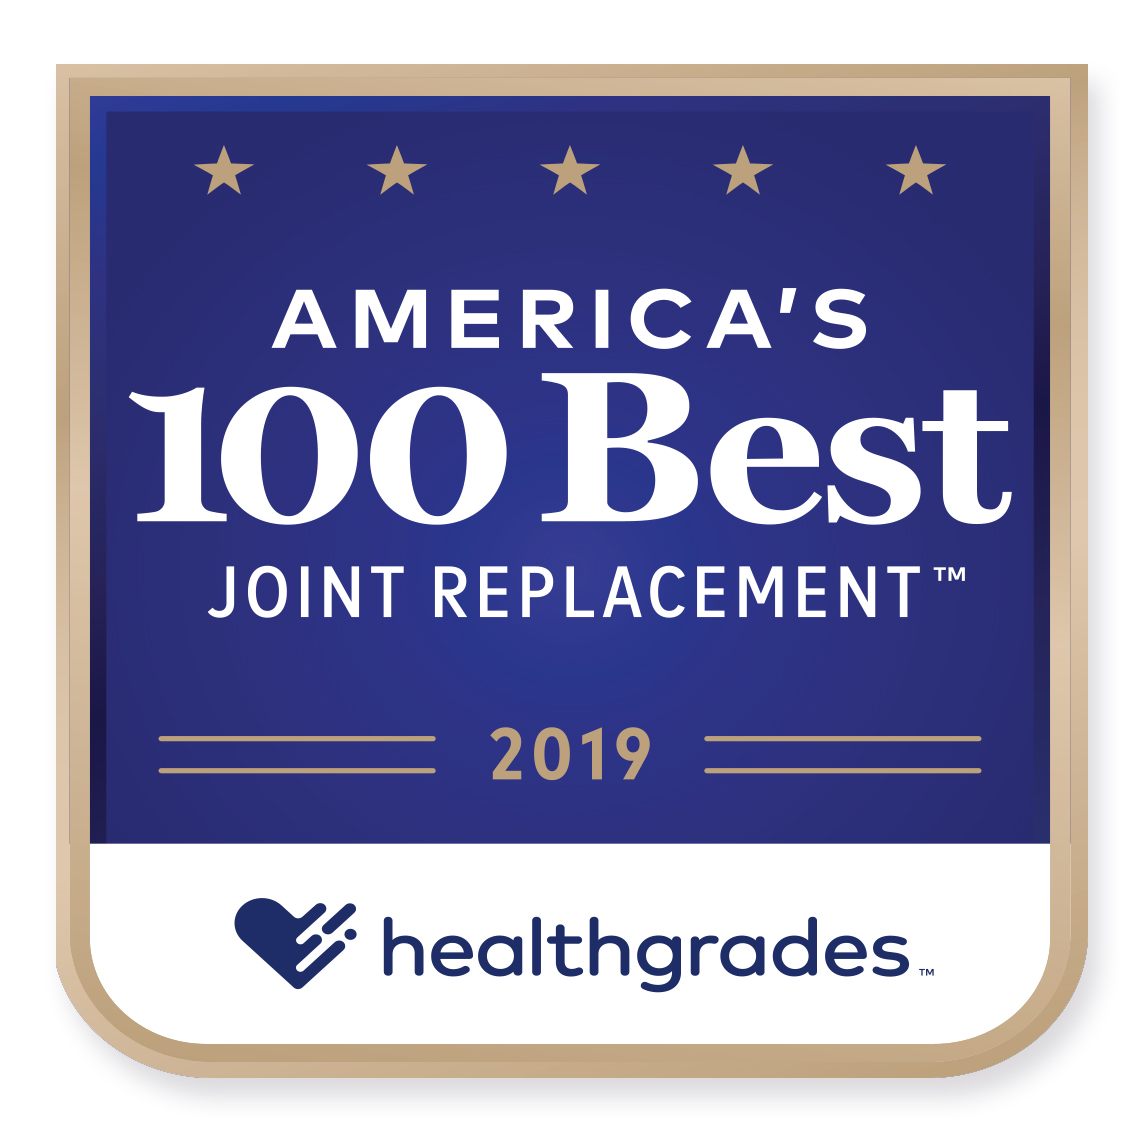 Americas 100 Best Joint Replacement 2019 Healthgrades Award